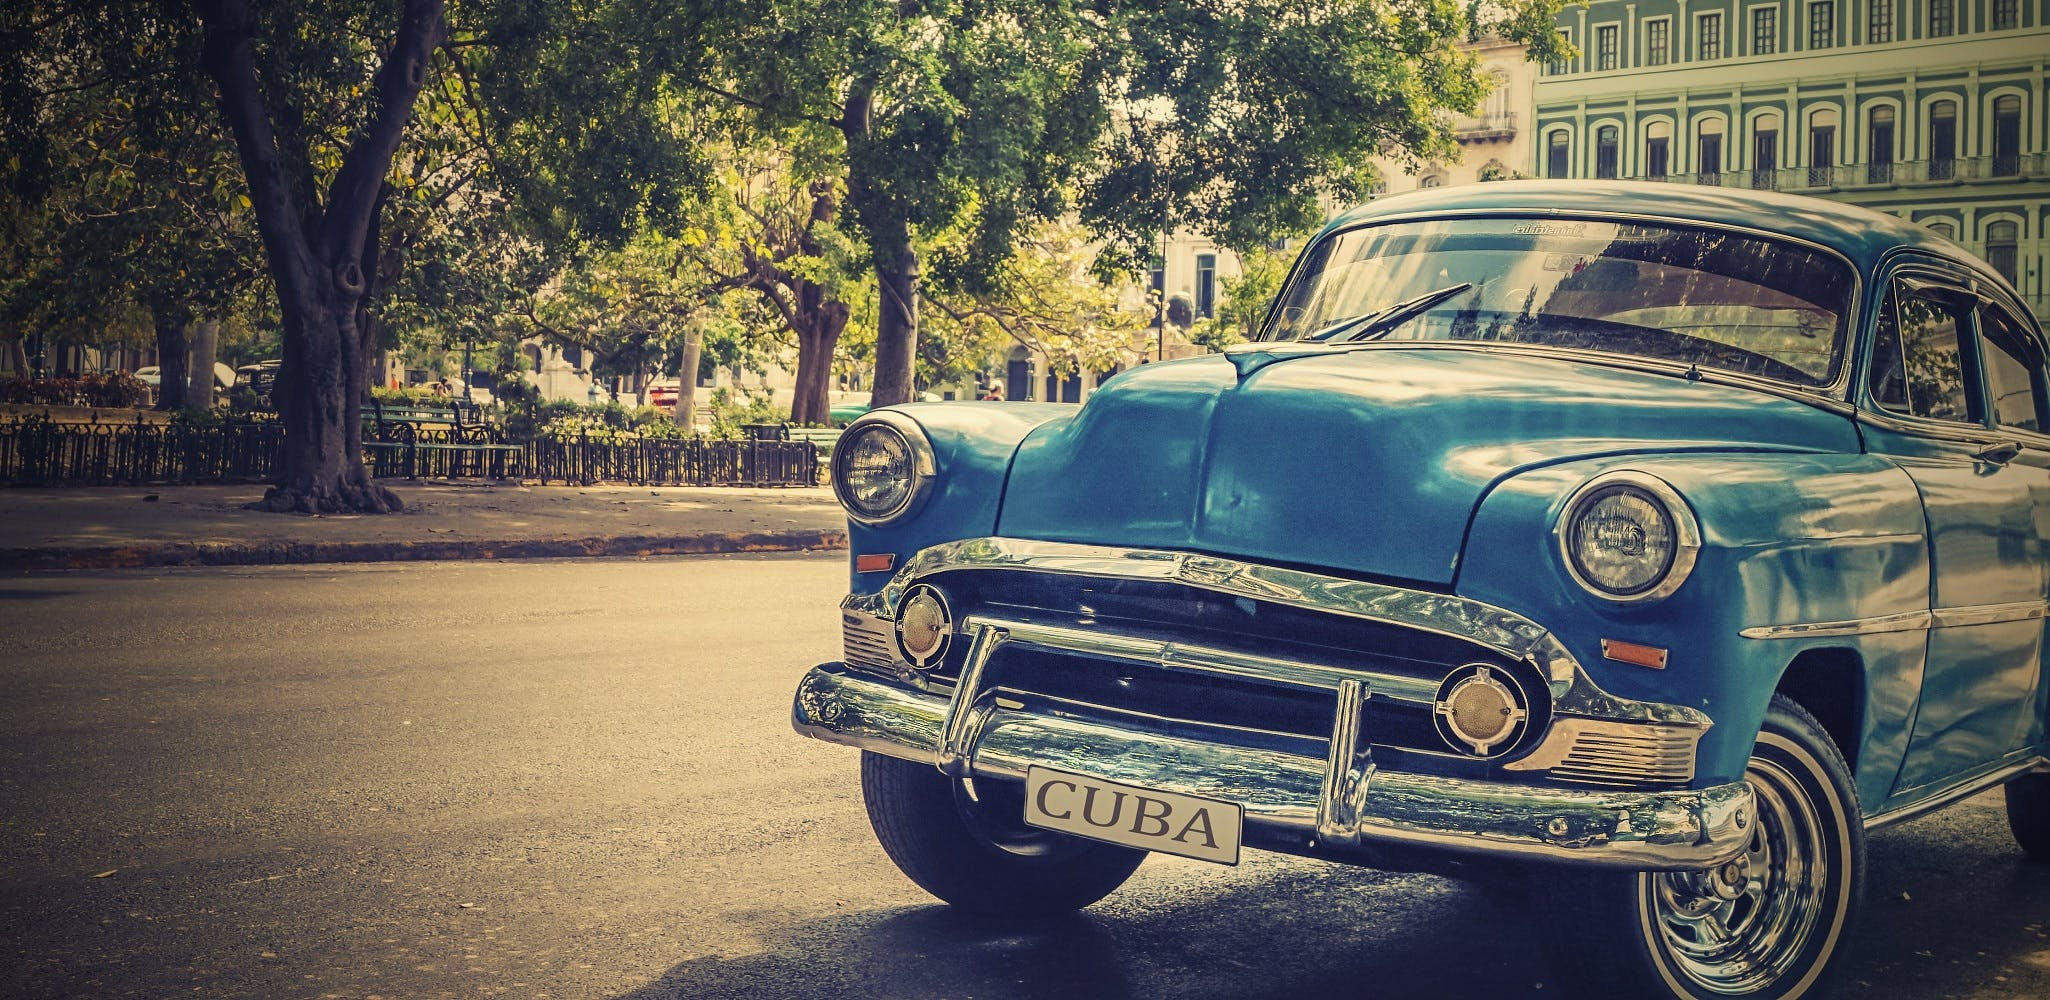 Vintage Blue Car on Roadside